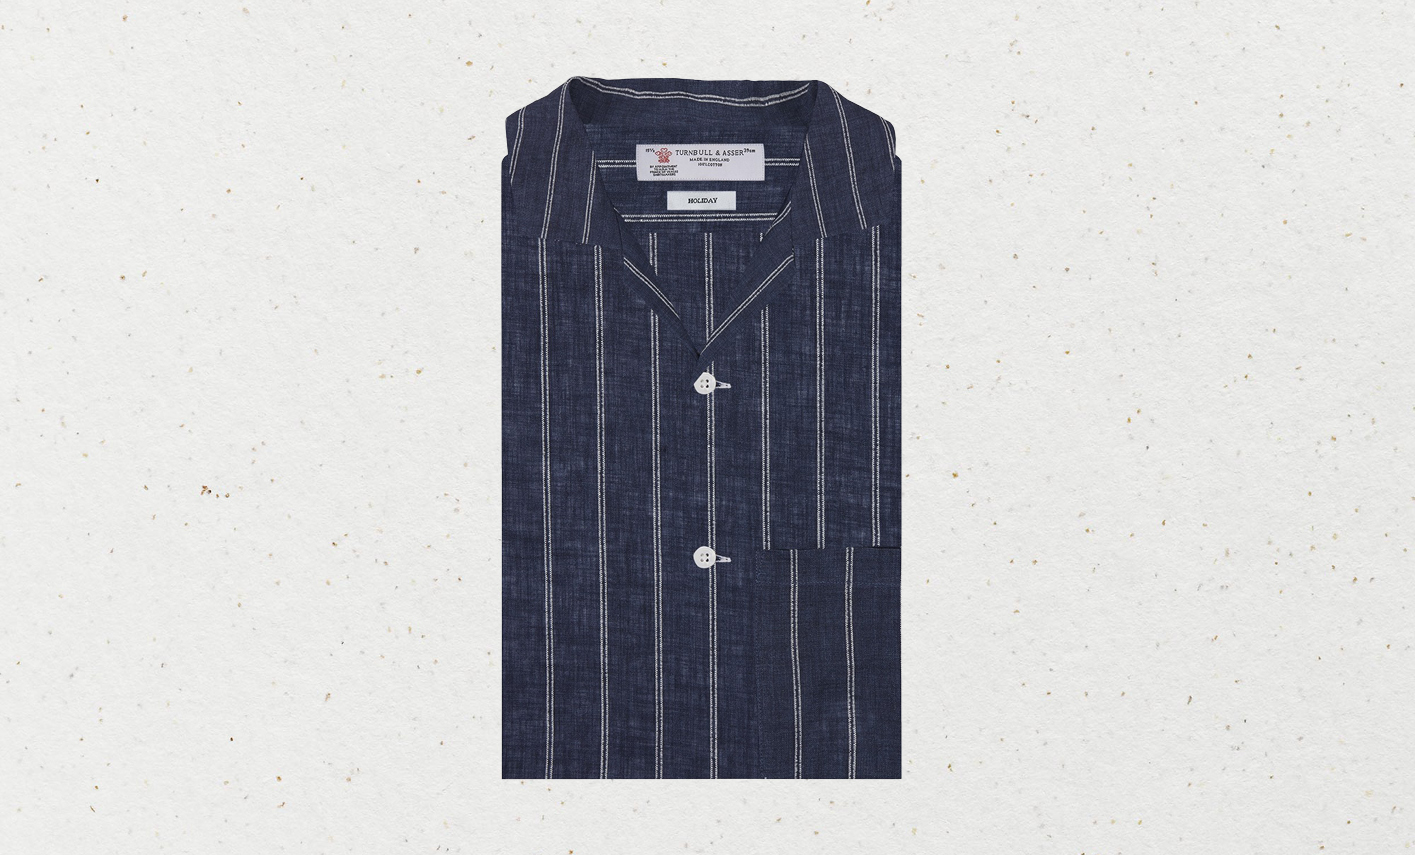 The relaxed but elegant Turnbull & Asser 'holiday fit' shirt